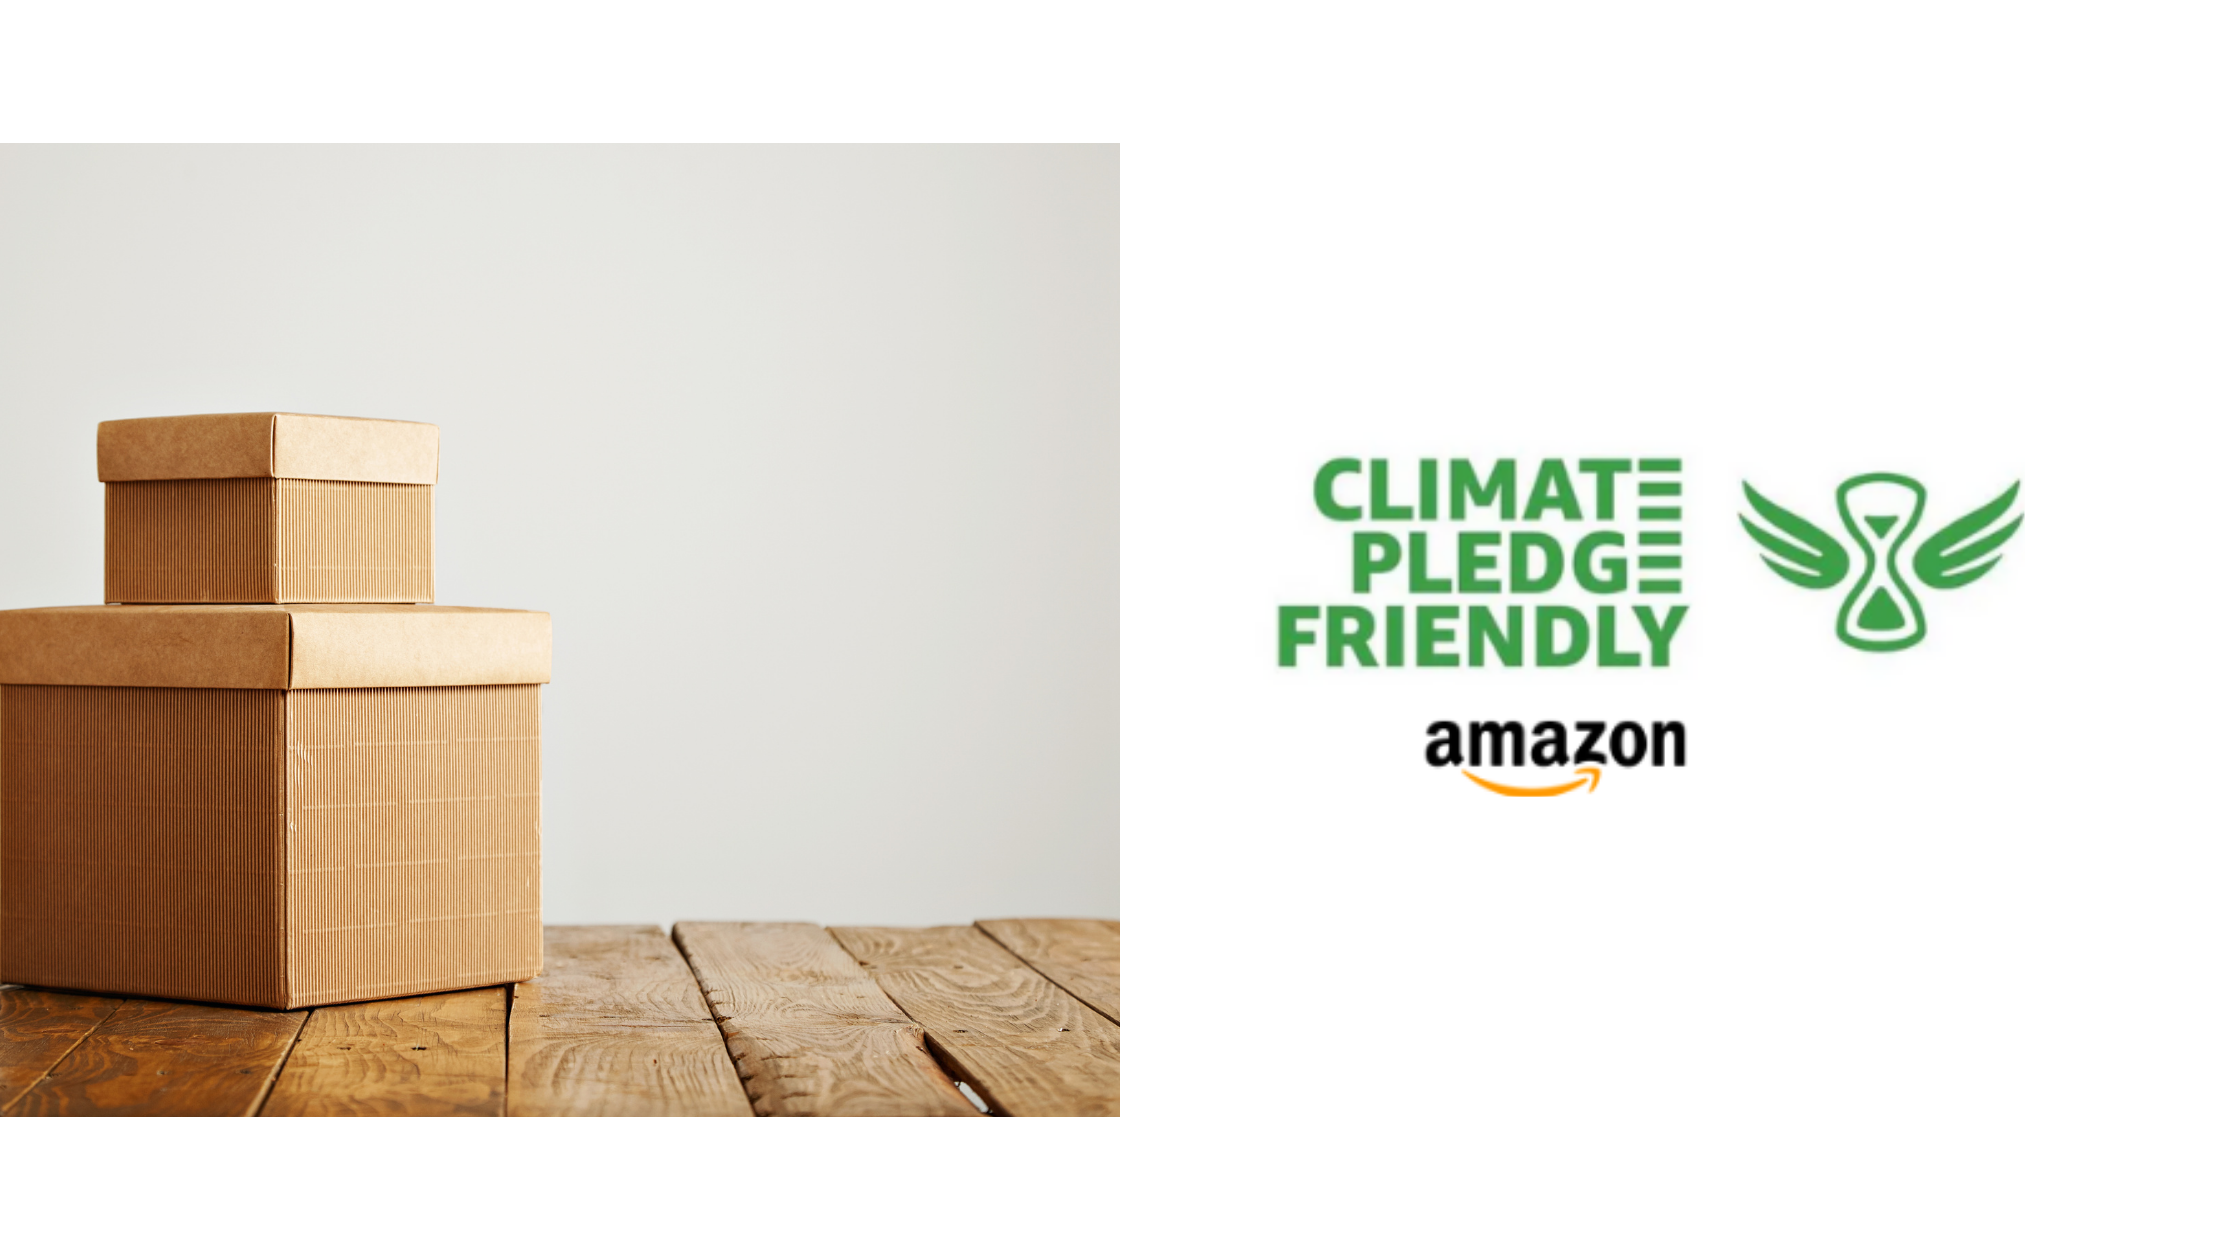 climate pledge friendly amazon